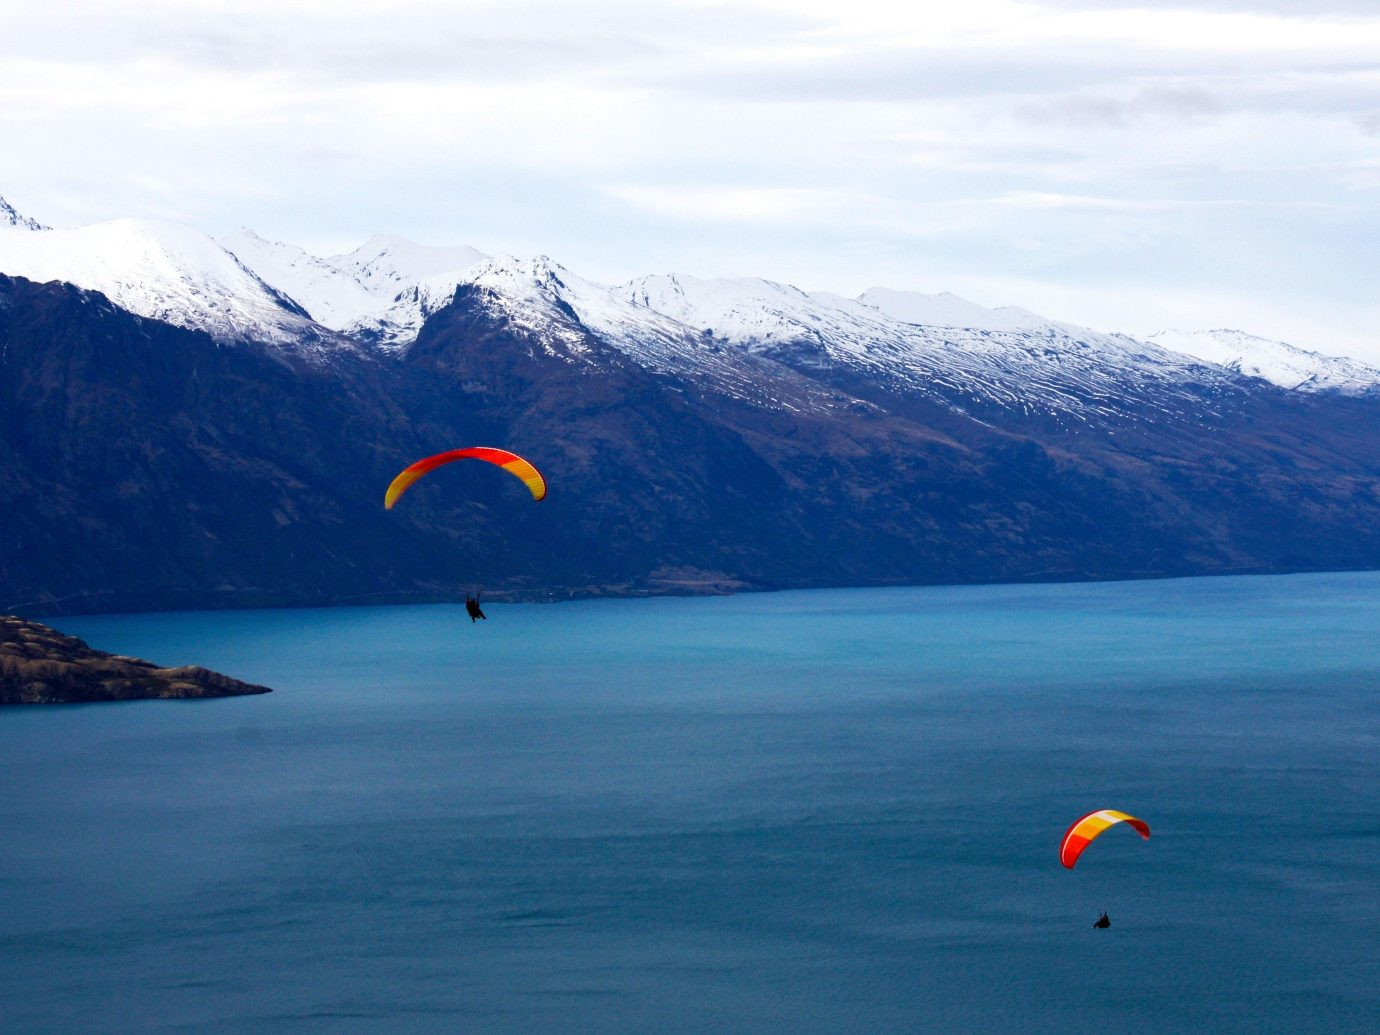 Jetsetter Guides water mountain sky outdoor paragliding air sports Nature sports windsports Lake atmosphere of earth Ocean Sea extreme sport flight mountain range parachuting colorful distance day